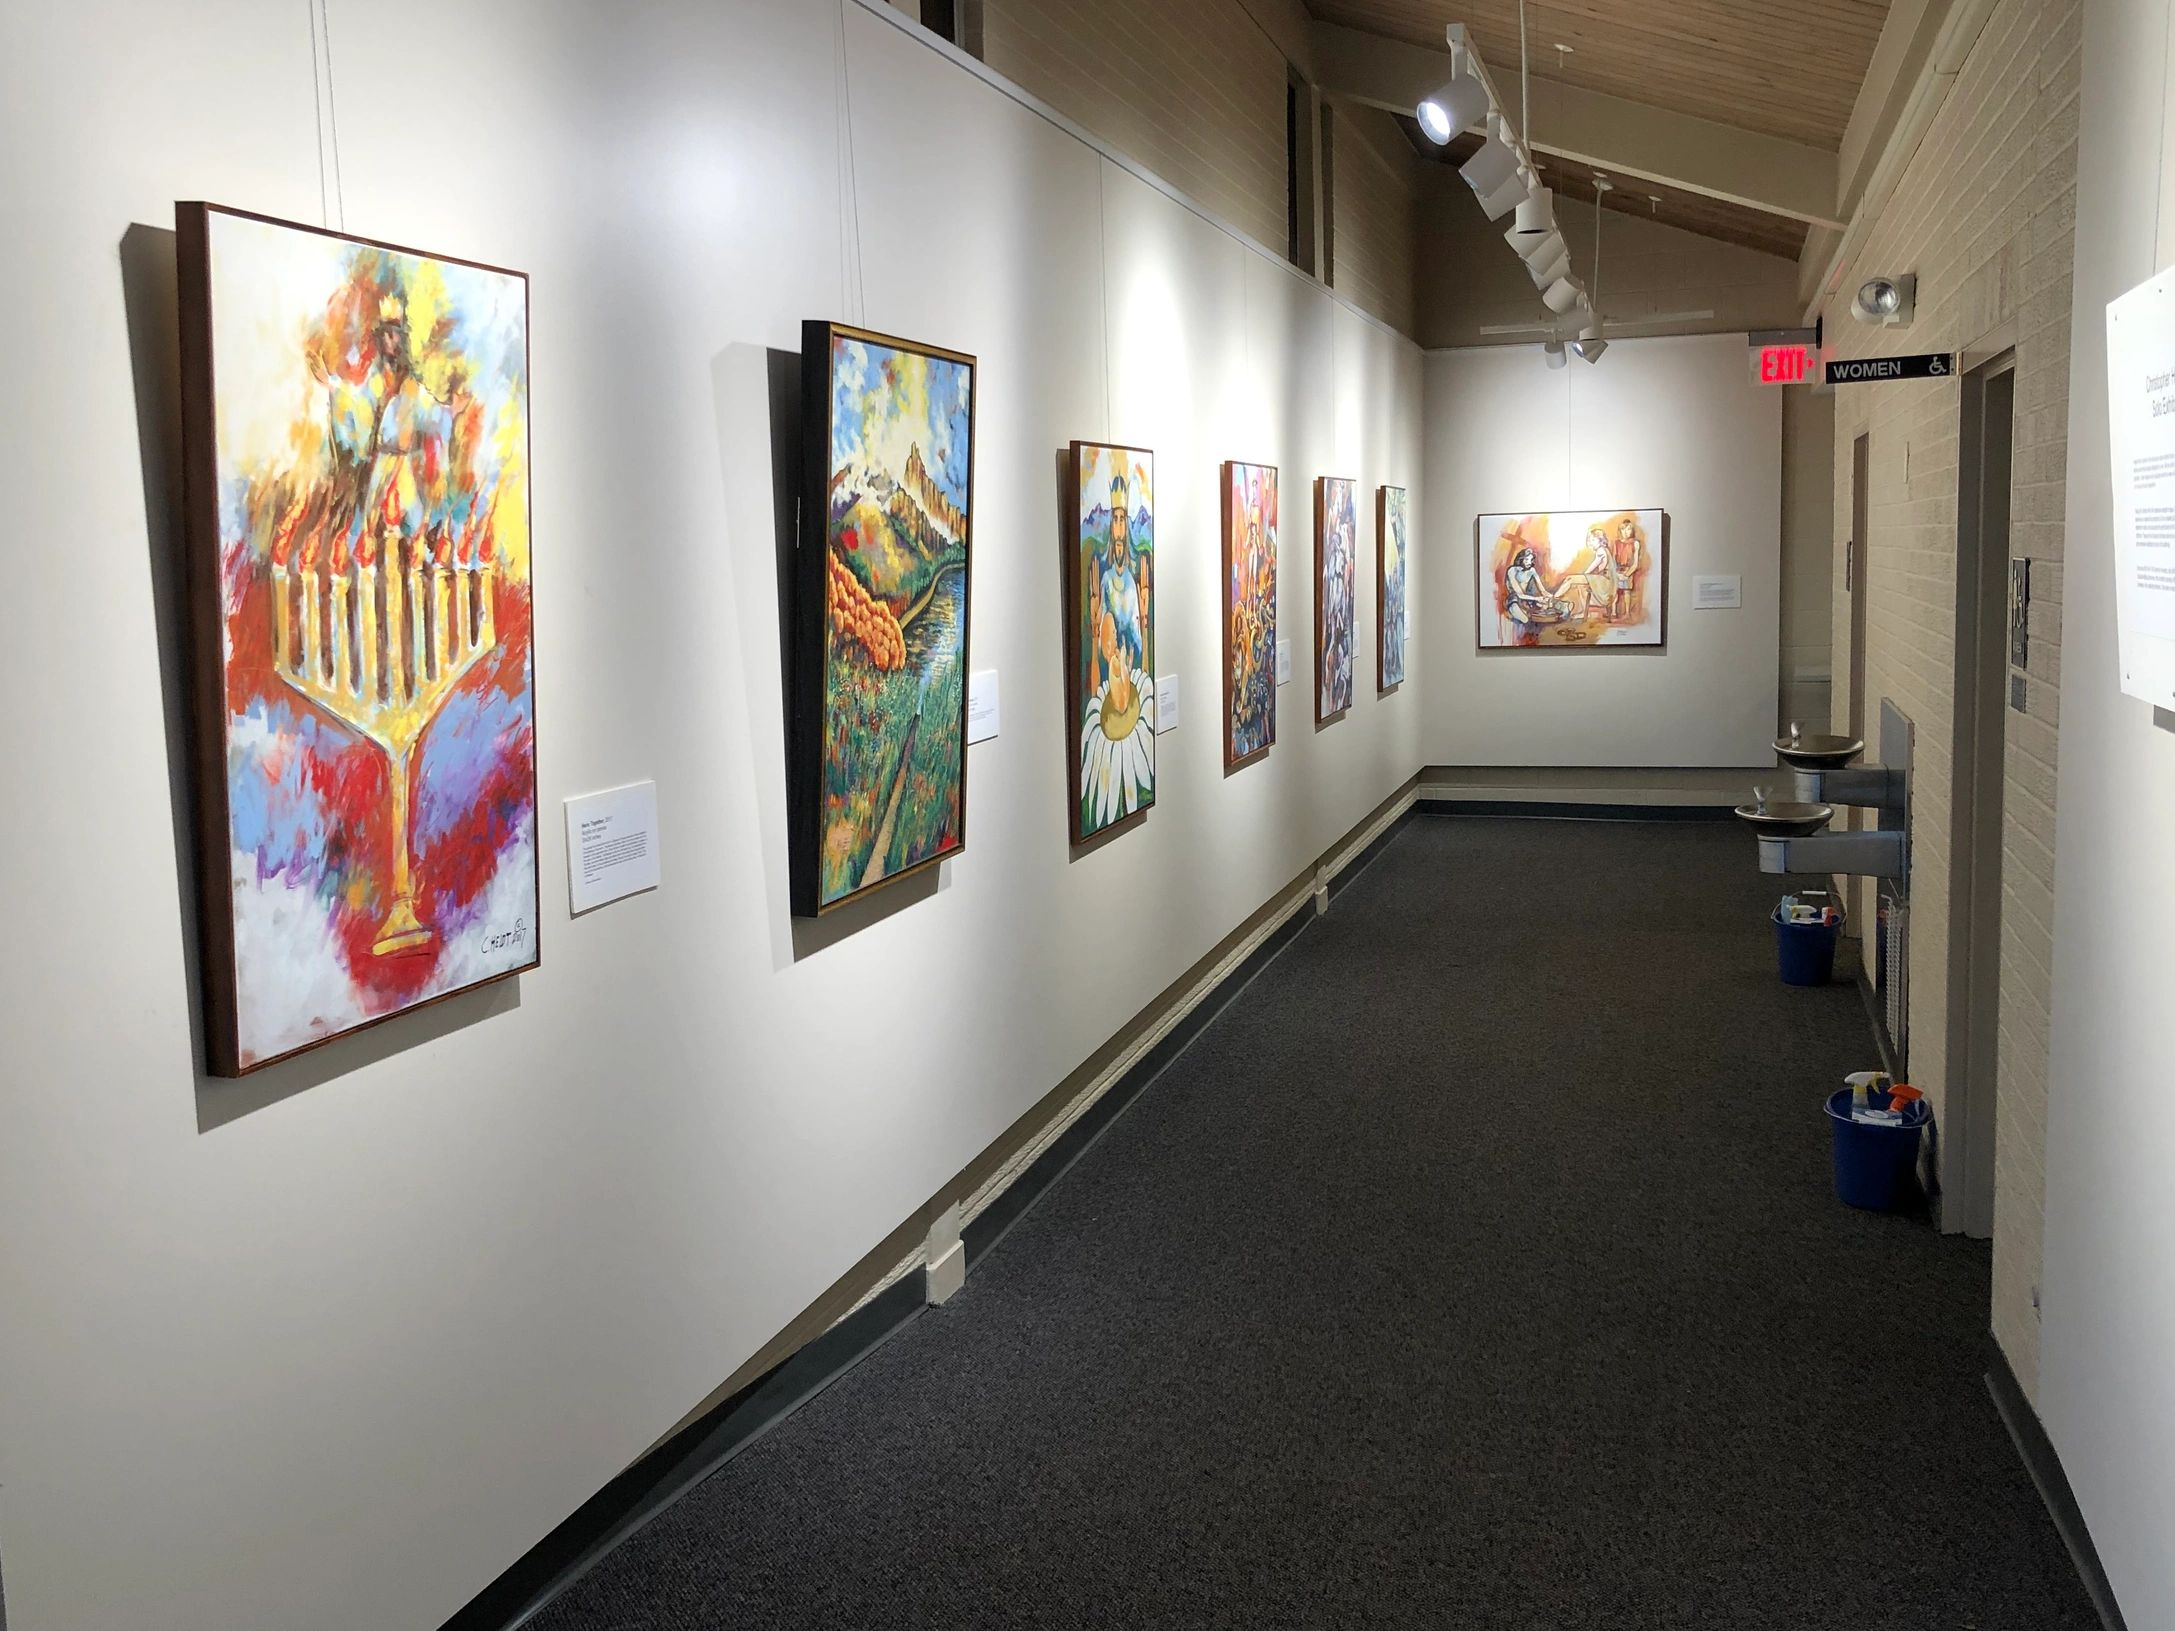 I have a small solo show going on at The Virginia Beach Community Chapel. It runs until November 3,